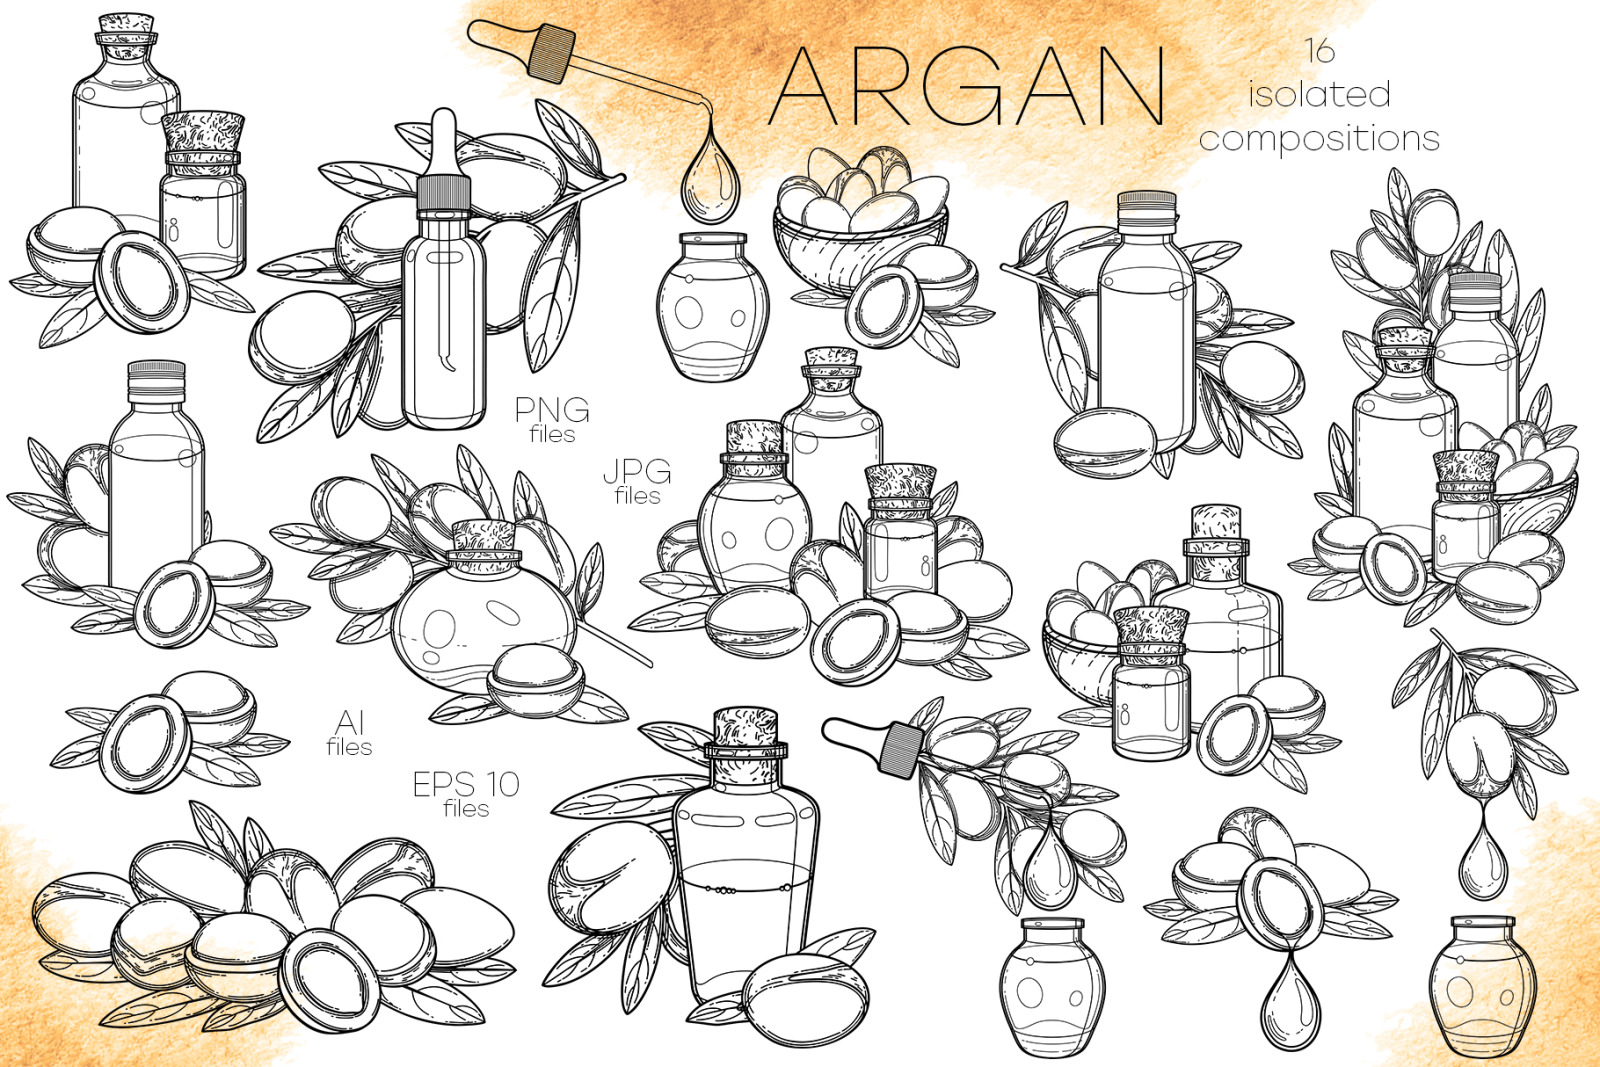 Argan - vector graphics